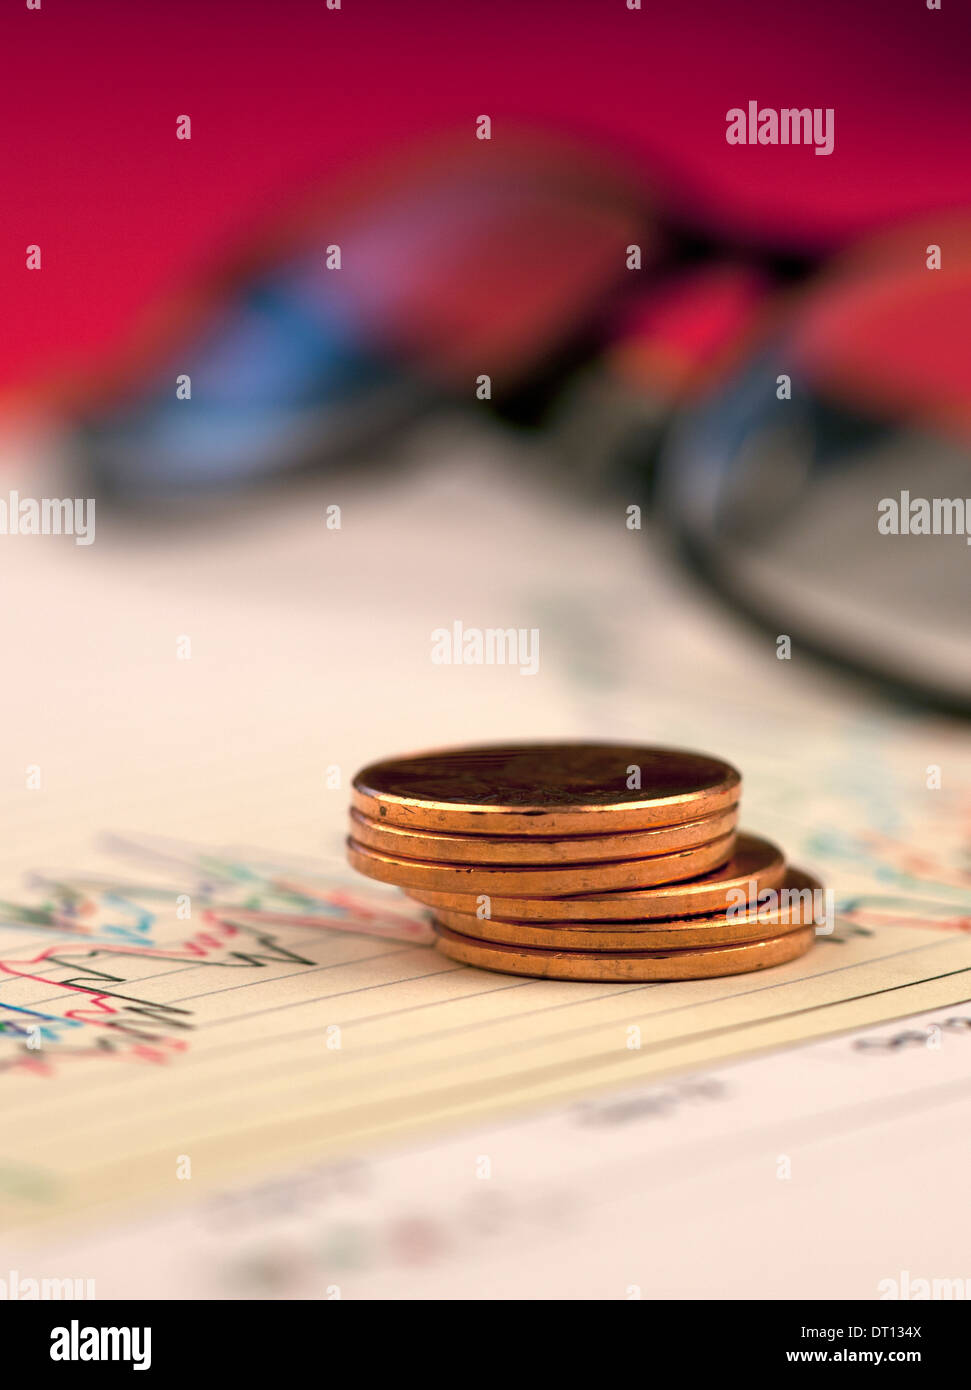 Stack of pennies on chart. - Stock Image